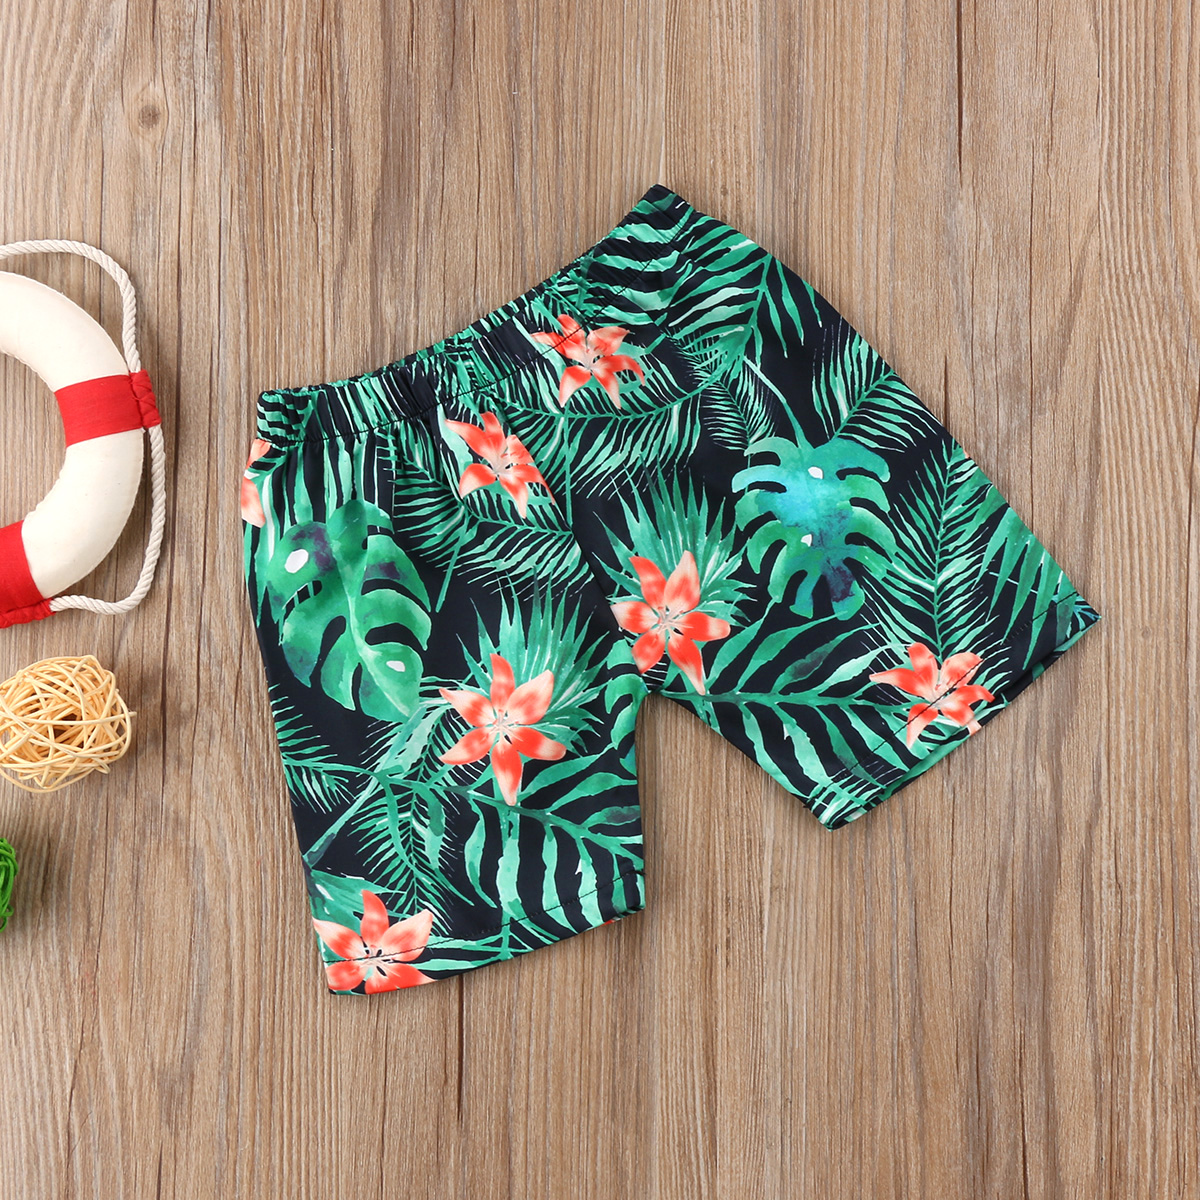 Kids Boy Swimming Trunks Board Shorts Boarder Baby Swim Hawaiian Beach Shortpants Trunks Boys Summer New